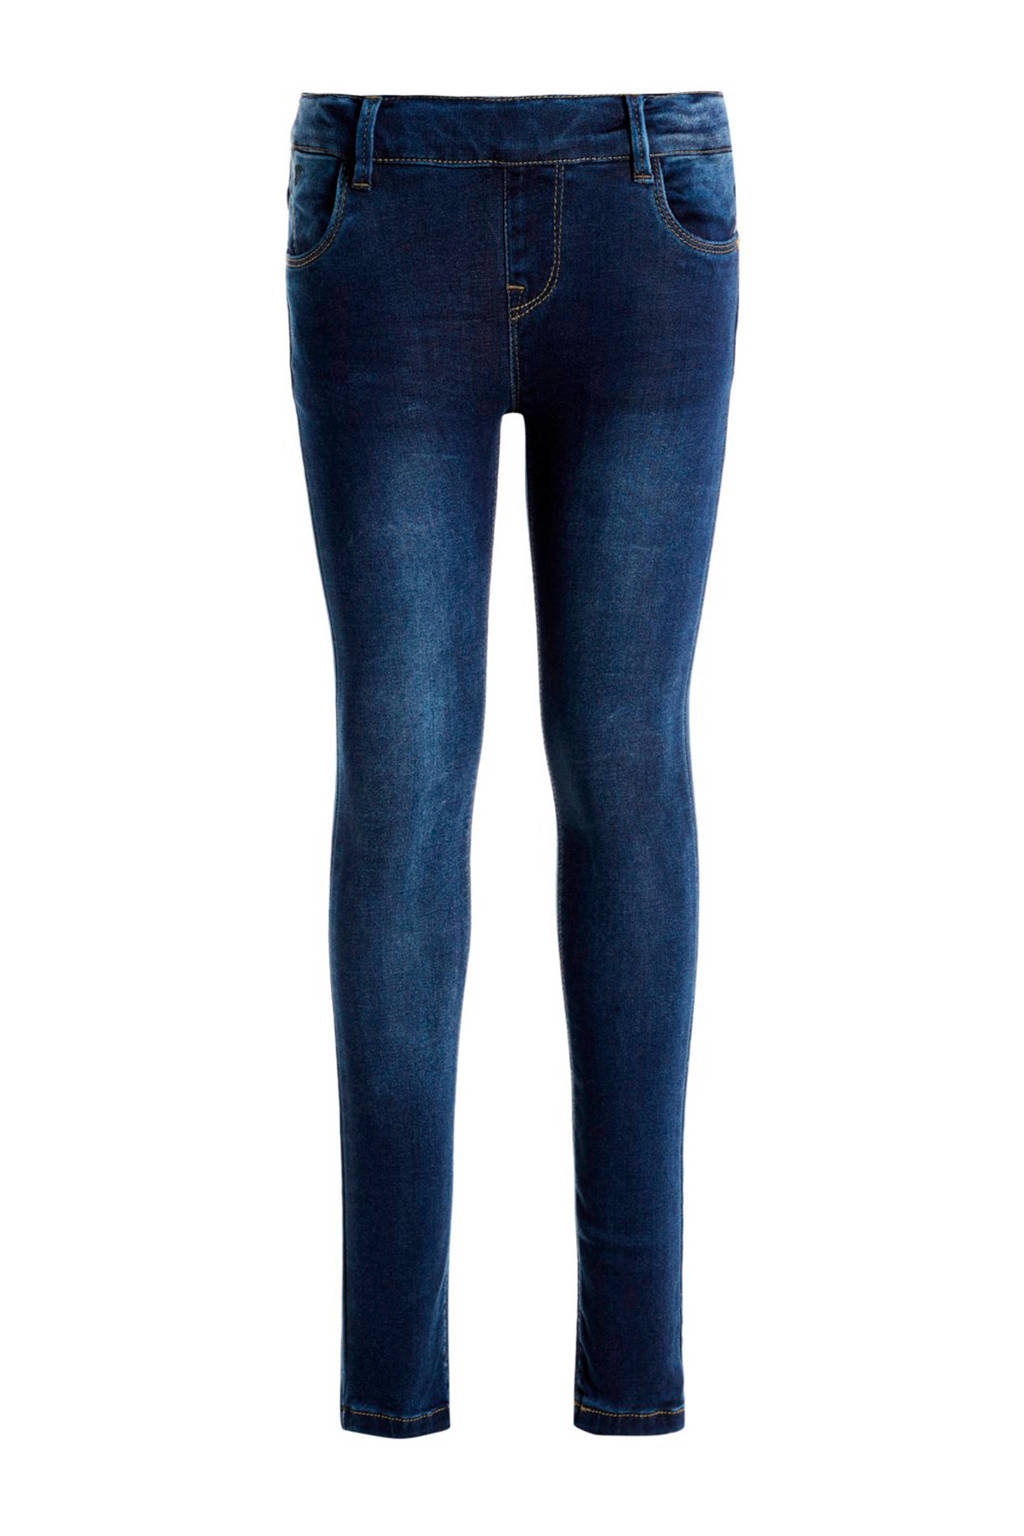 NAME IT KIDS skinny fit jeans Polly dark blue denim, Dark blue denim